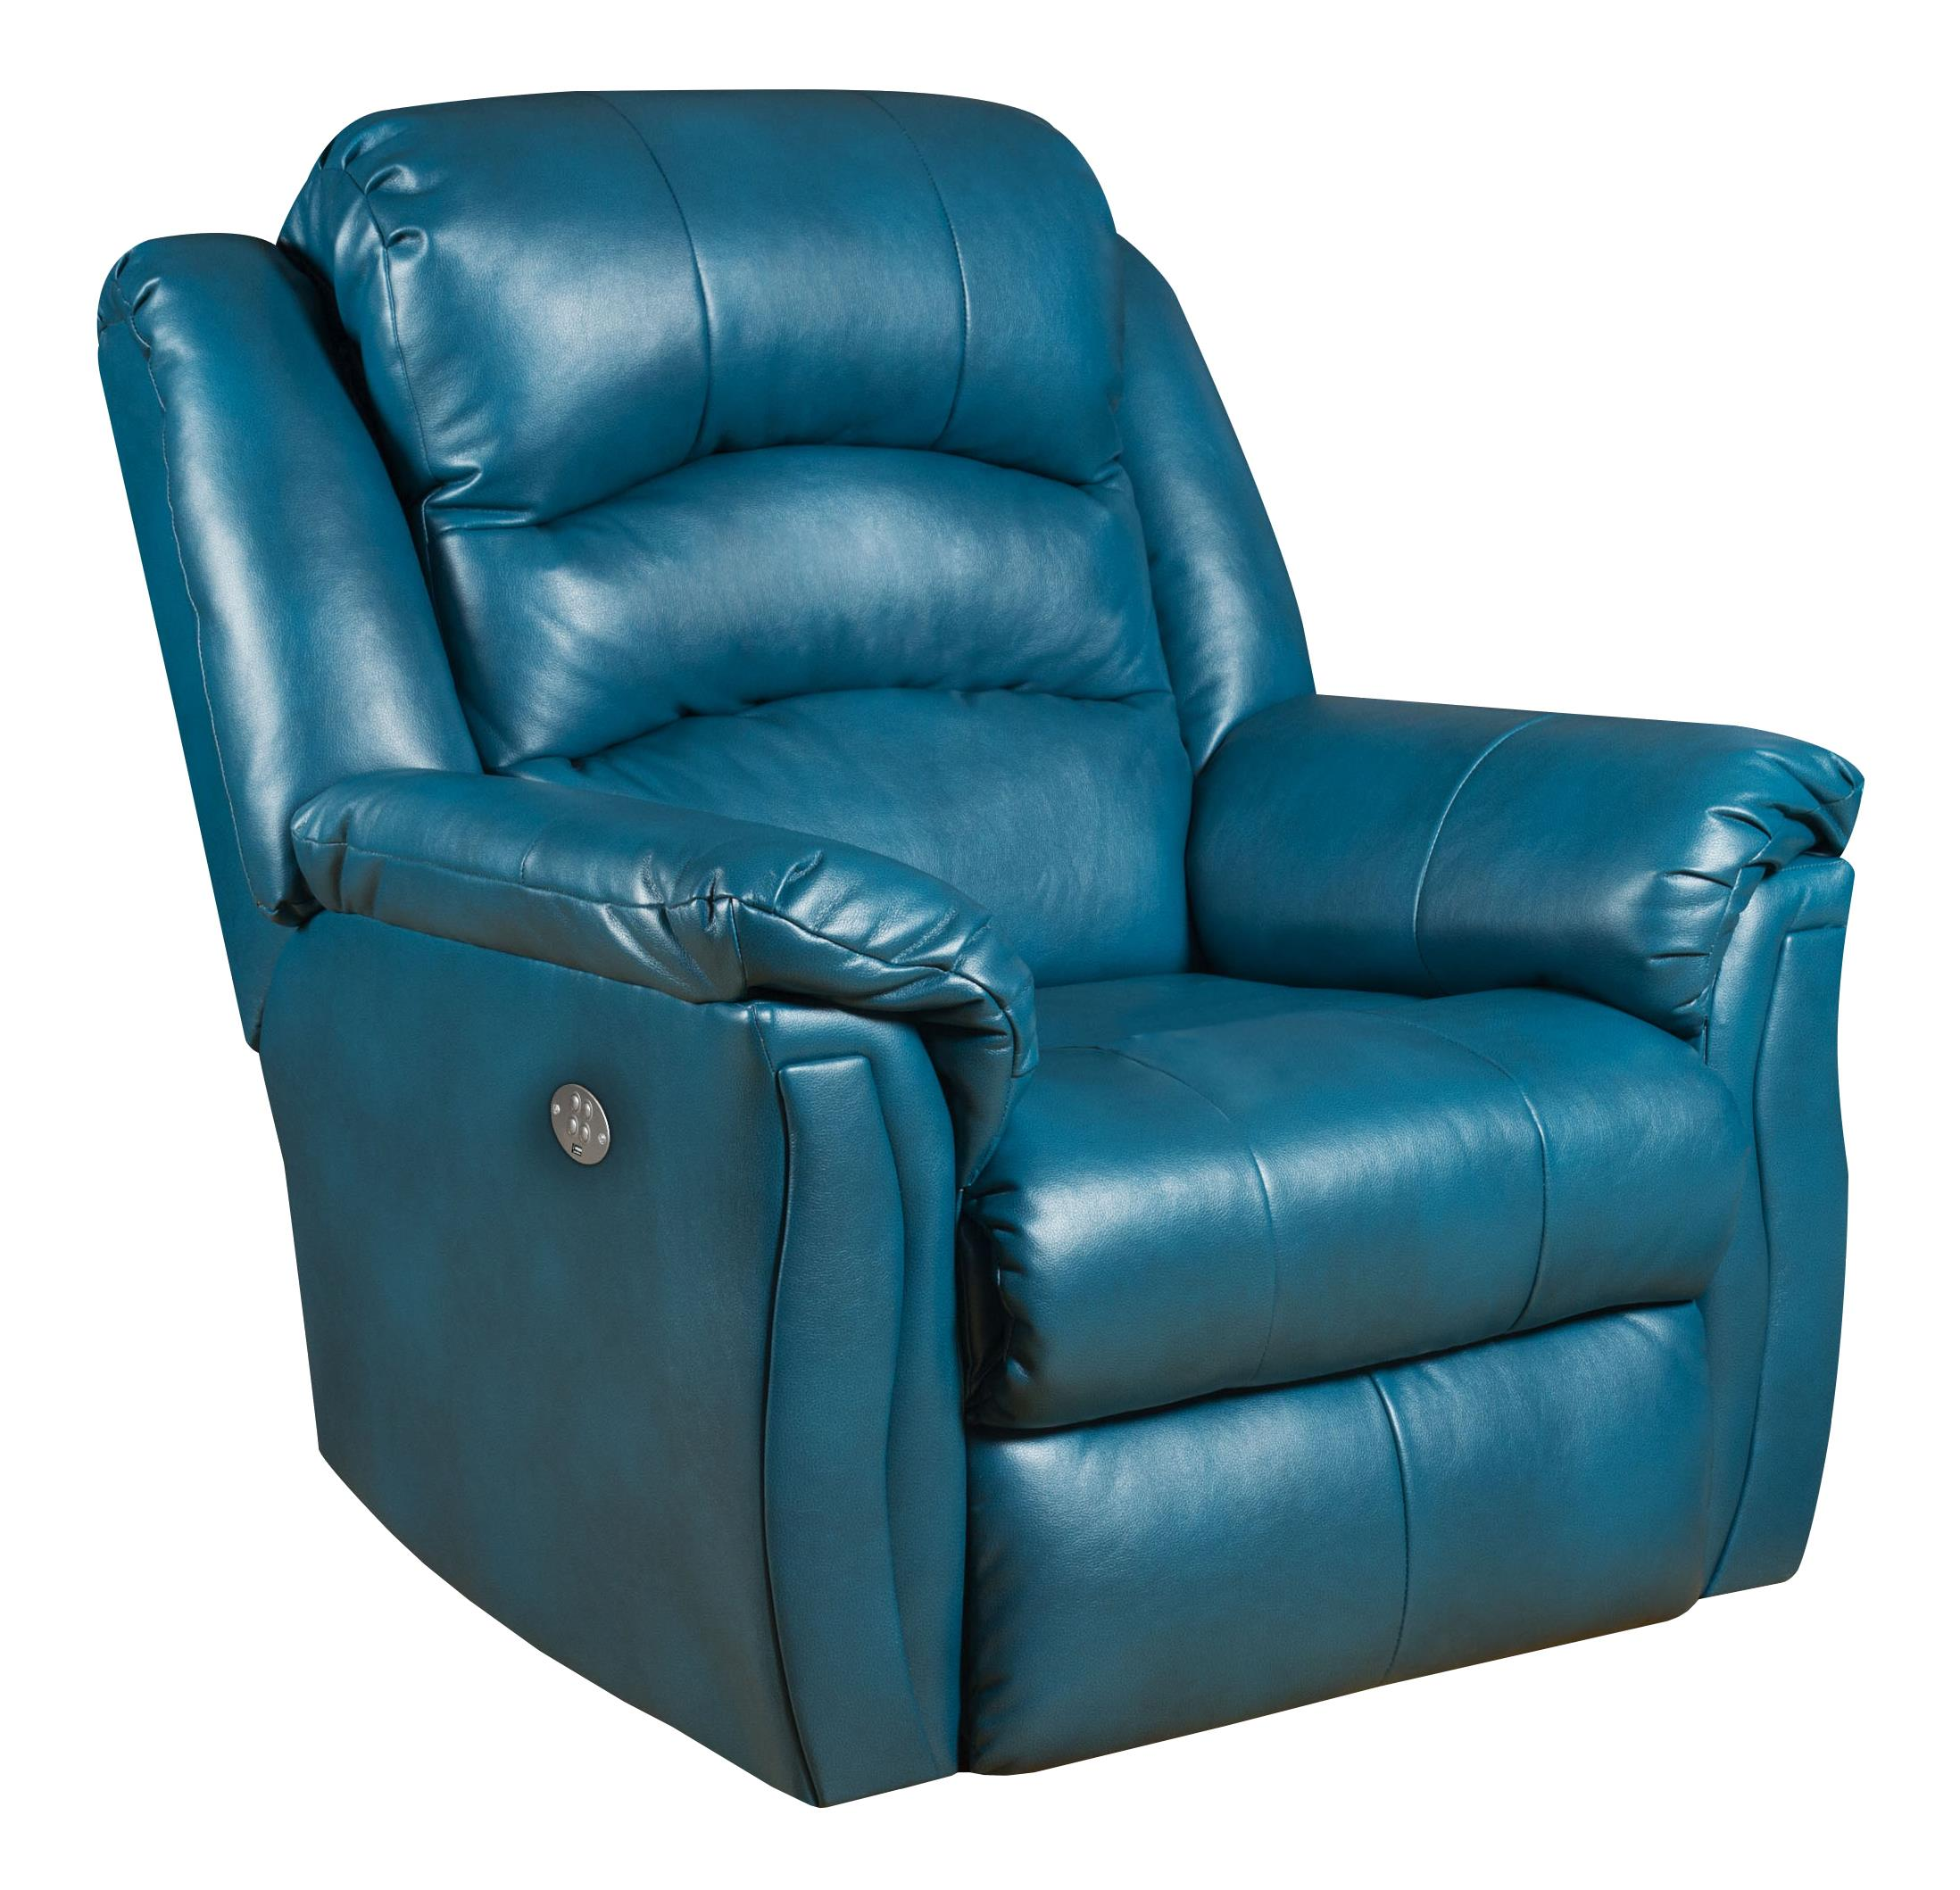 Southern Motion Recliners Max Wall Hugger Recliner